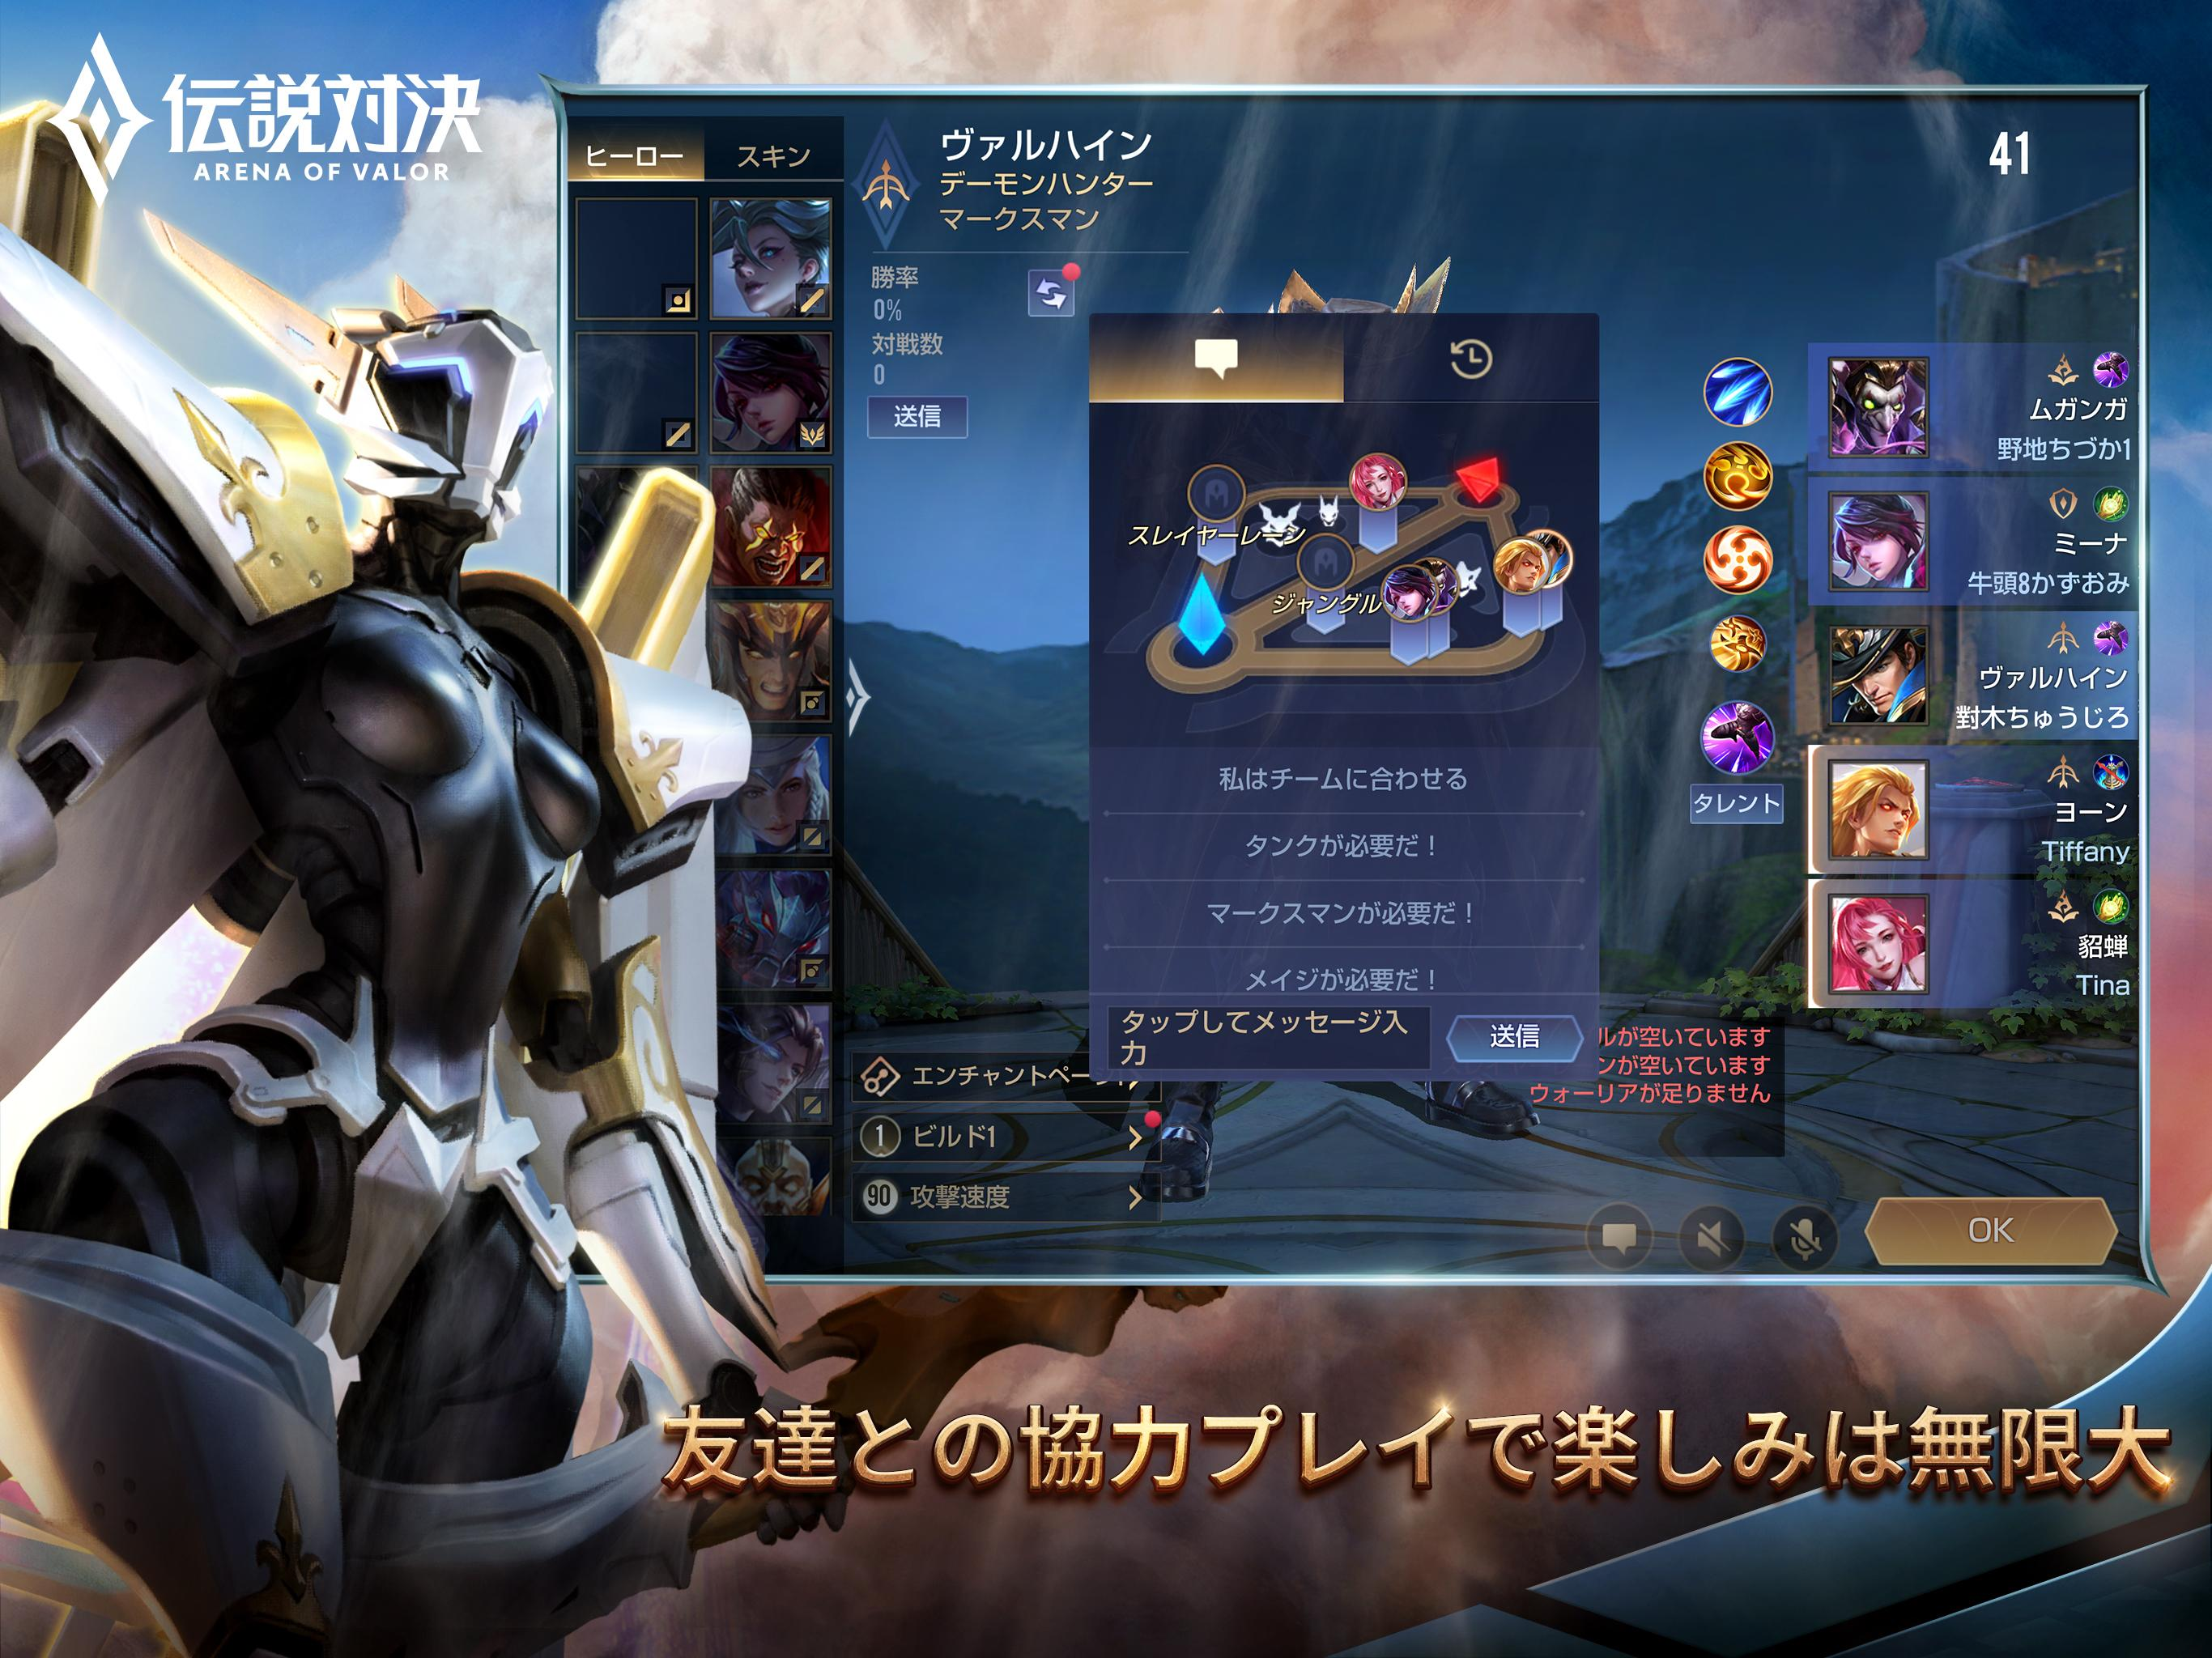 伝説対決 Arena of Valor 1.36.1.8 Screenshot 12